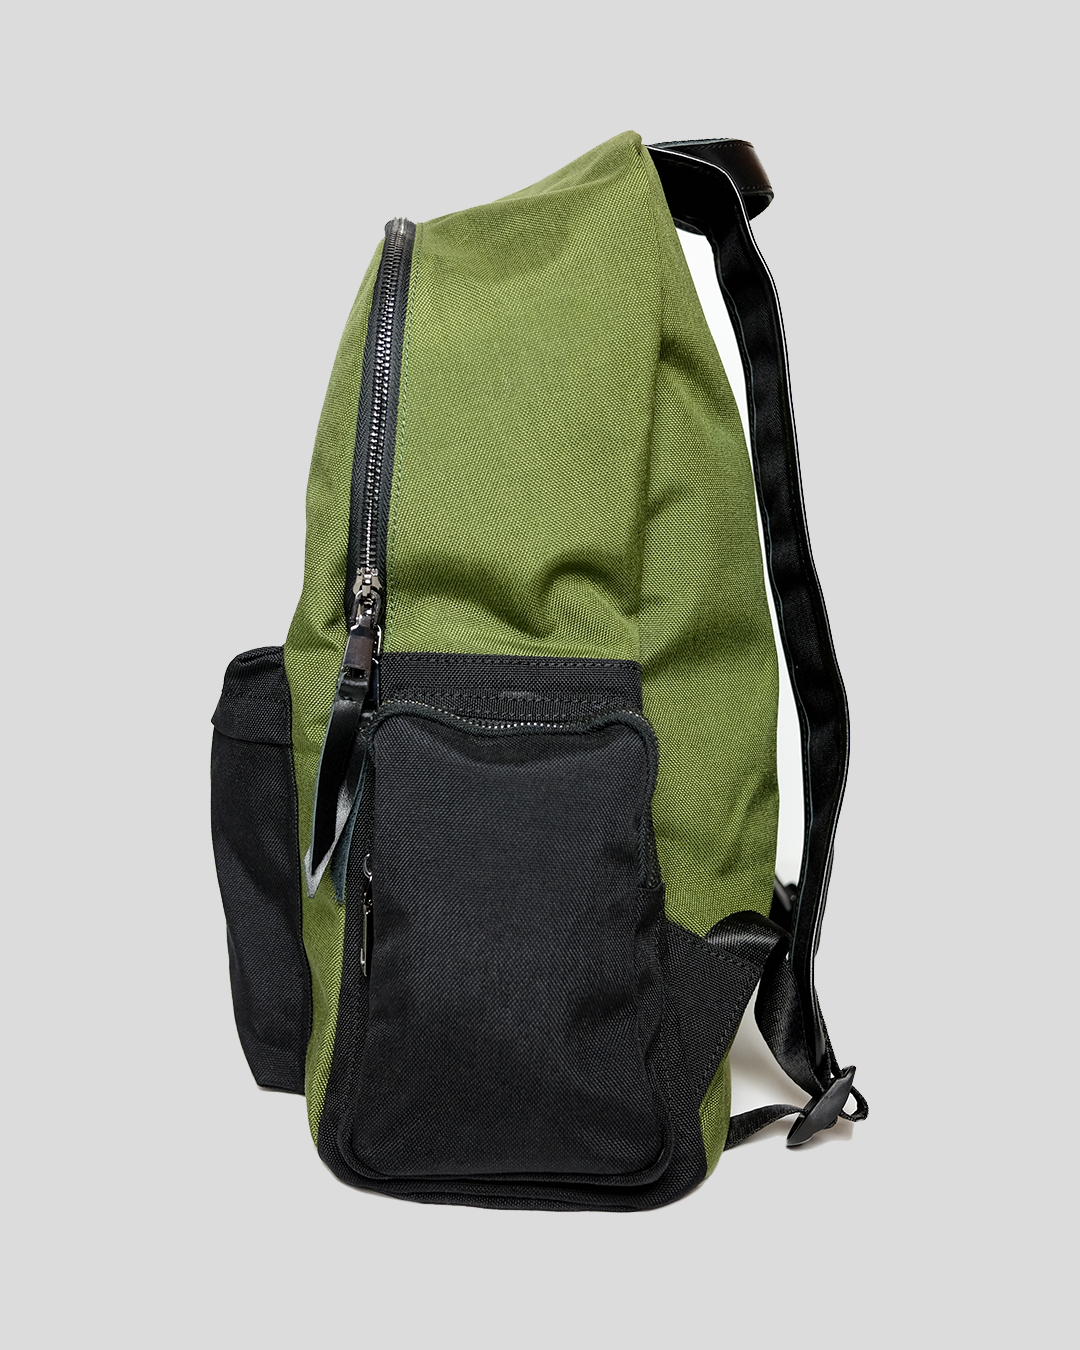 photo-4-GREEN-CORDURA-BACKPACK-URBANE-MUSE-CHRIS-SMITH